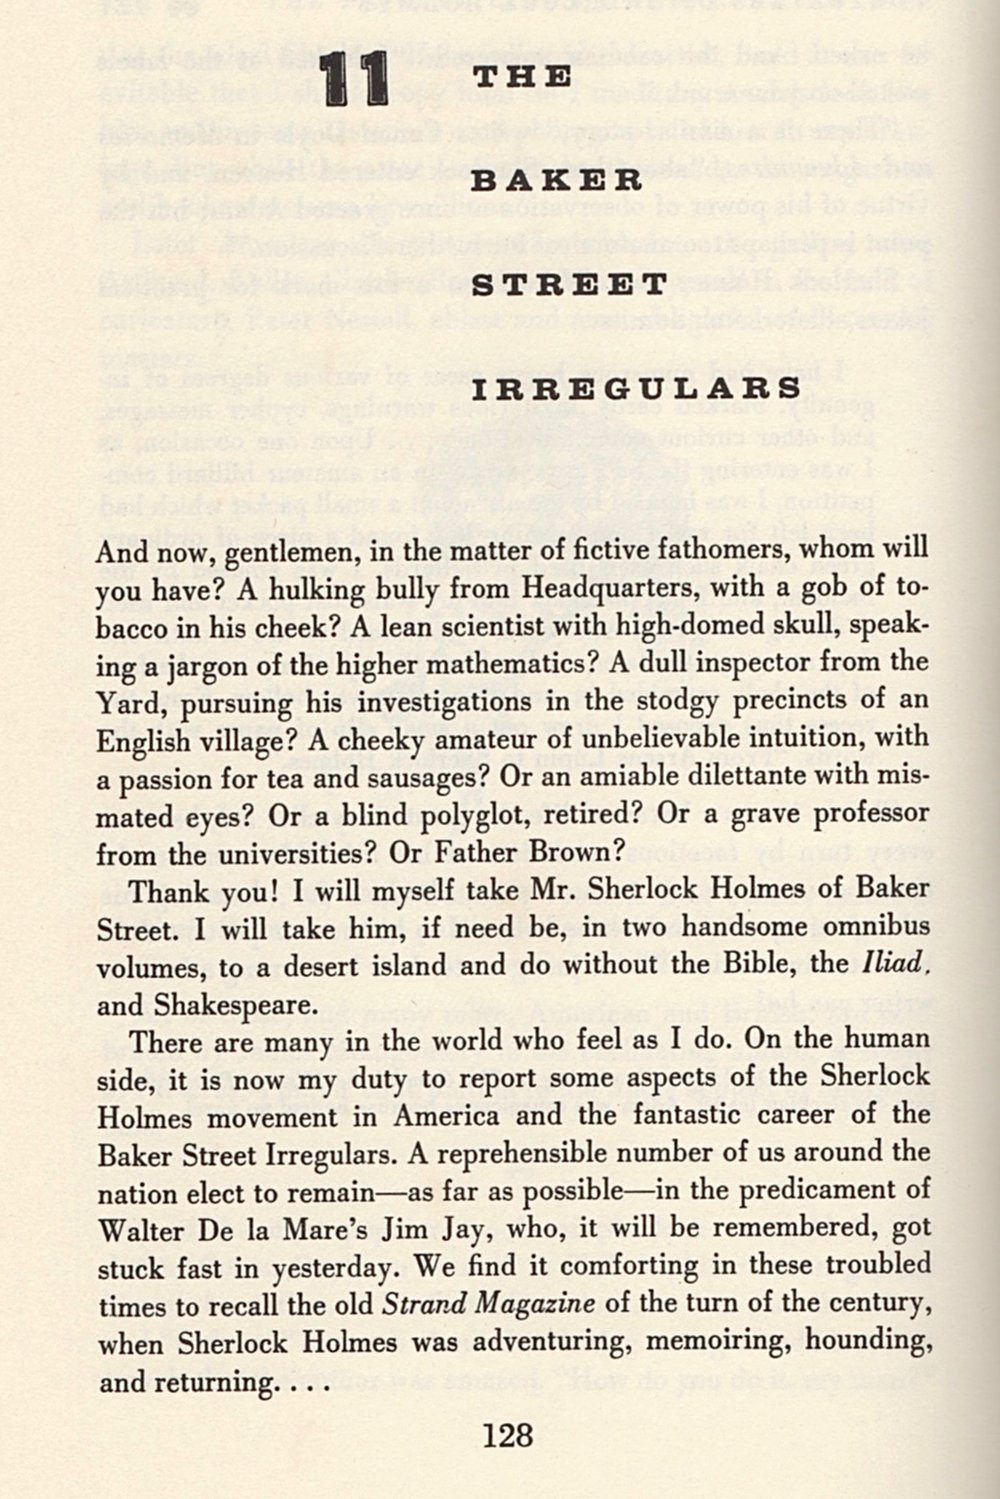 The opening page of Starrett's chapter on the Baker Street Irregulars of New York.